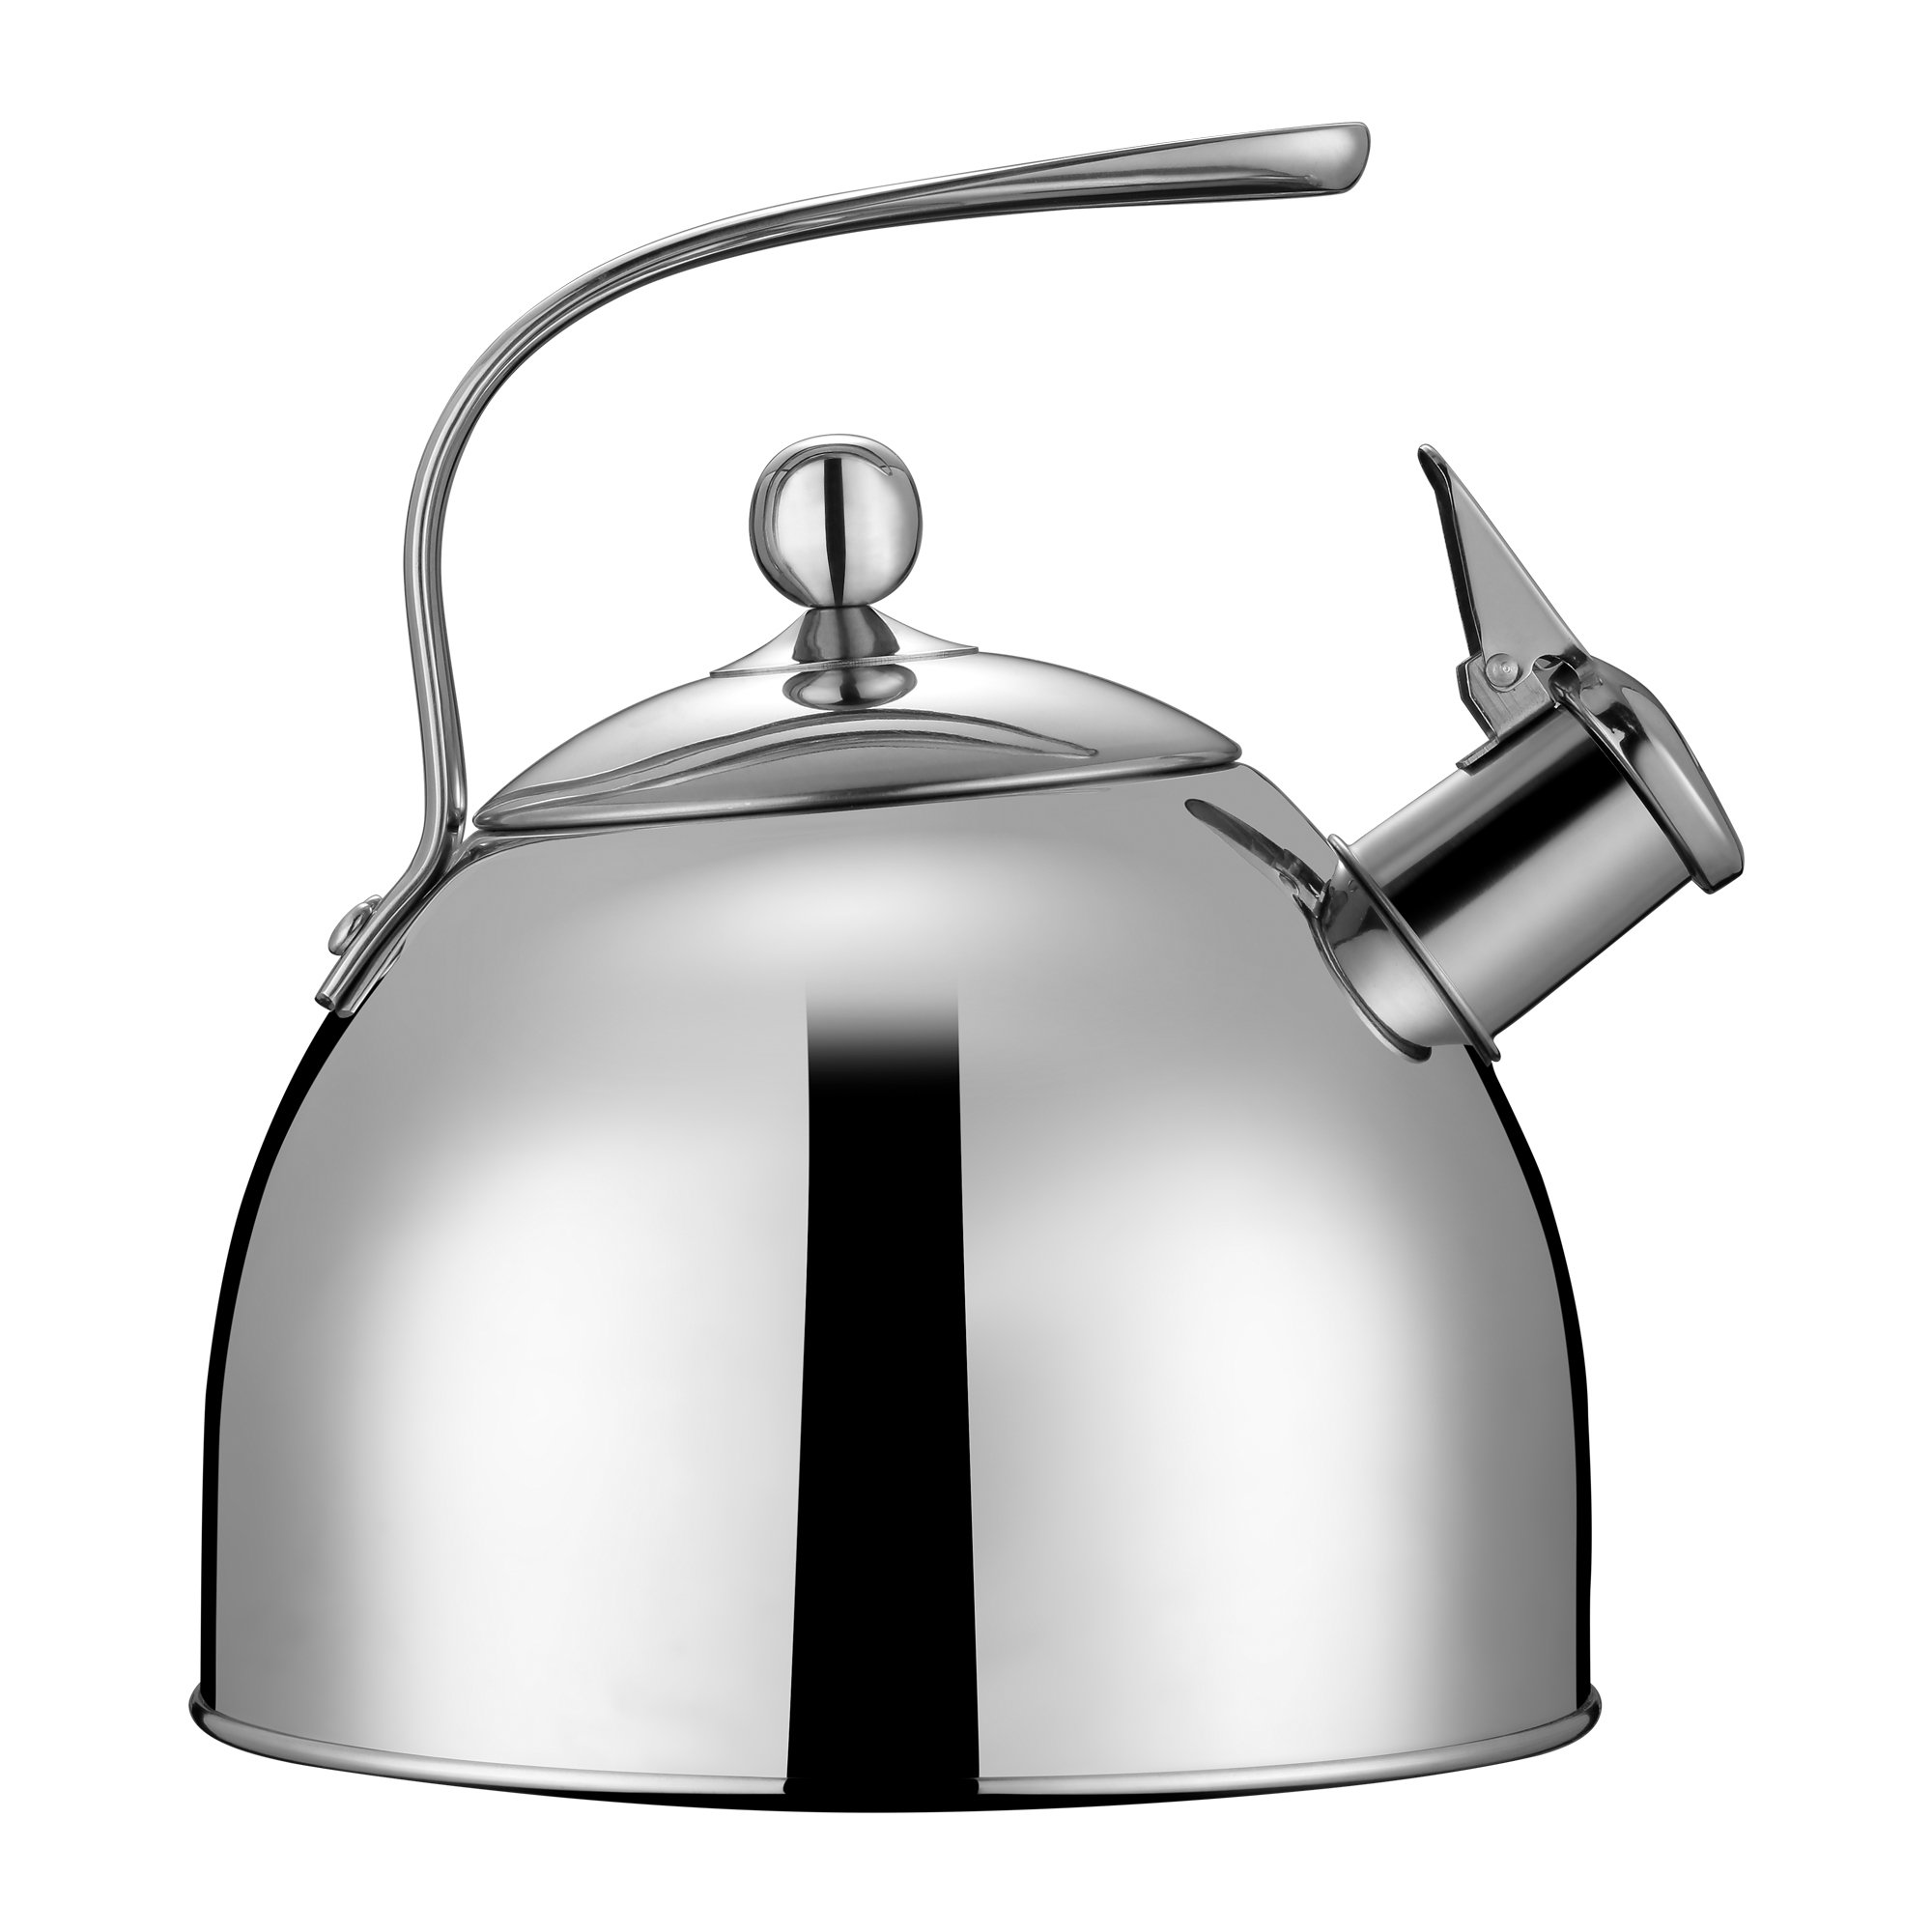 Injoy Whistling Tea Kettle 304 Stainless Steel Teapot Classic Cookware in LFGB/FDA Standard for All Stovetops - 1  Insulation Pad Included, 2.64 Quart/2.5 L, Silver